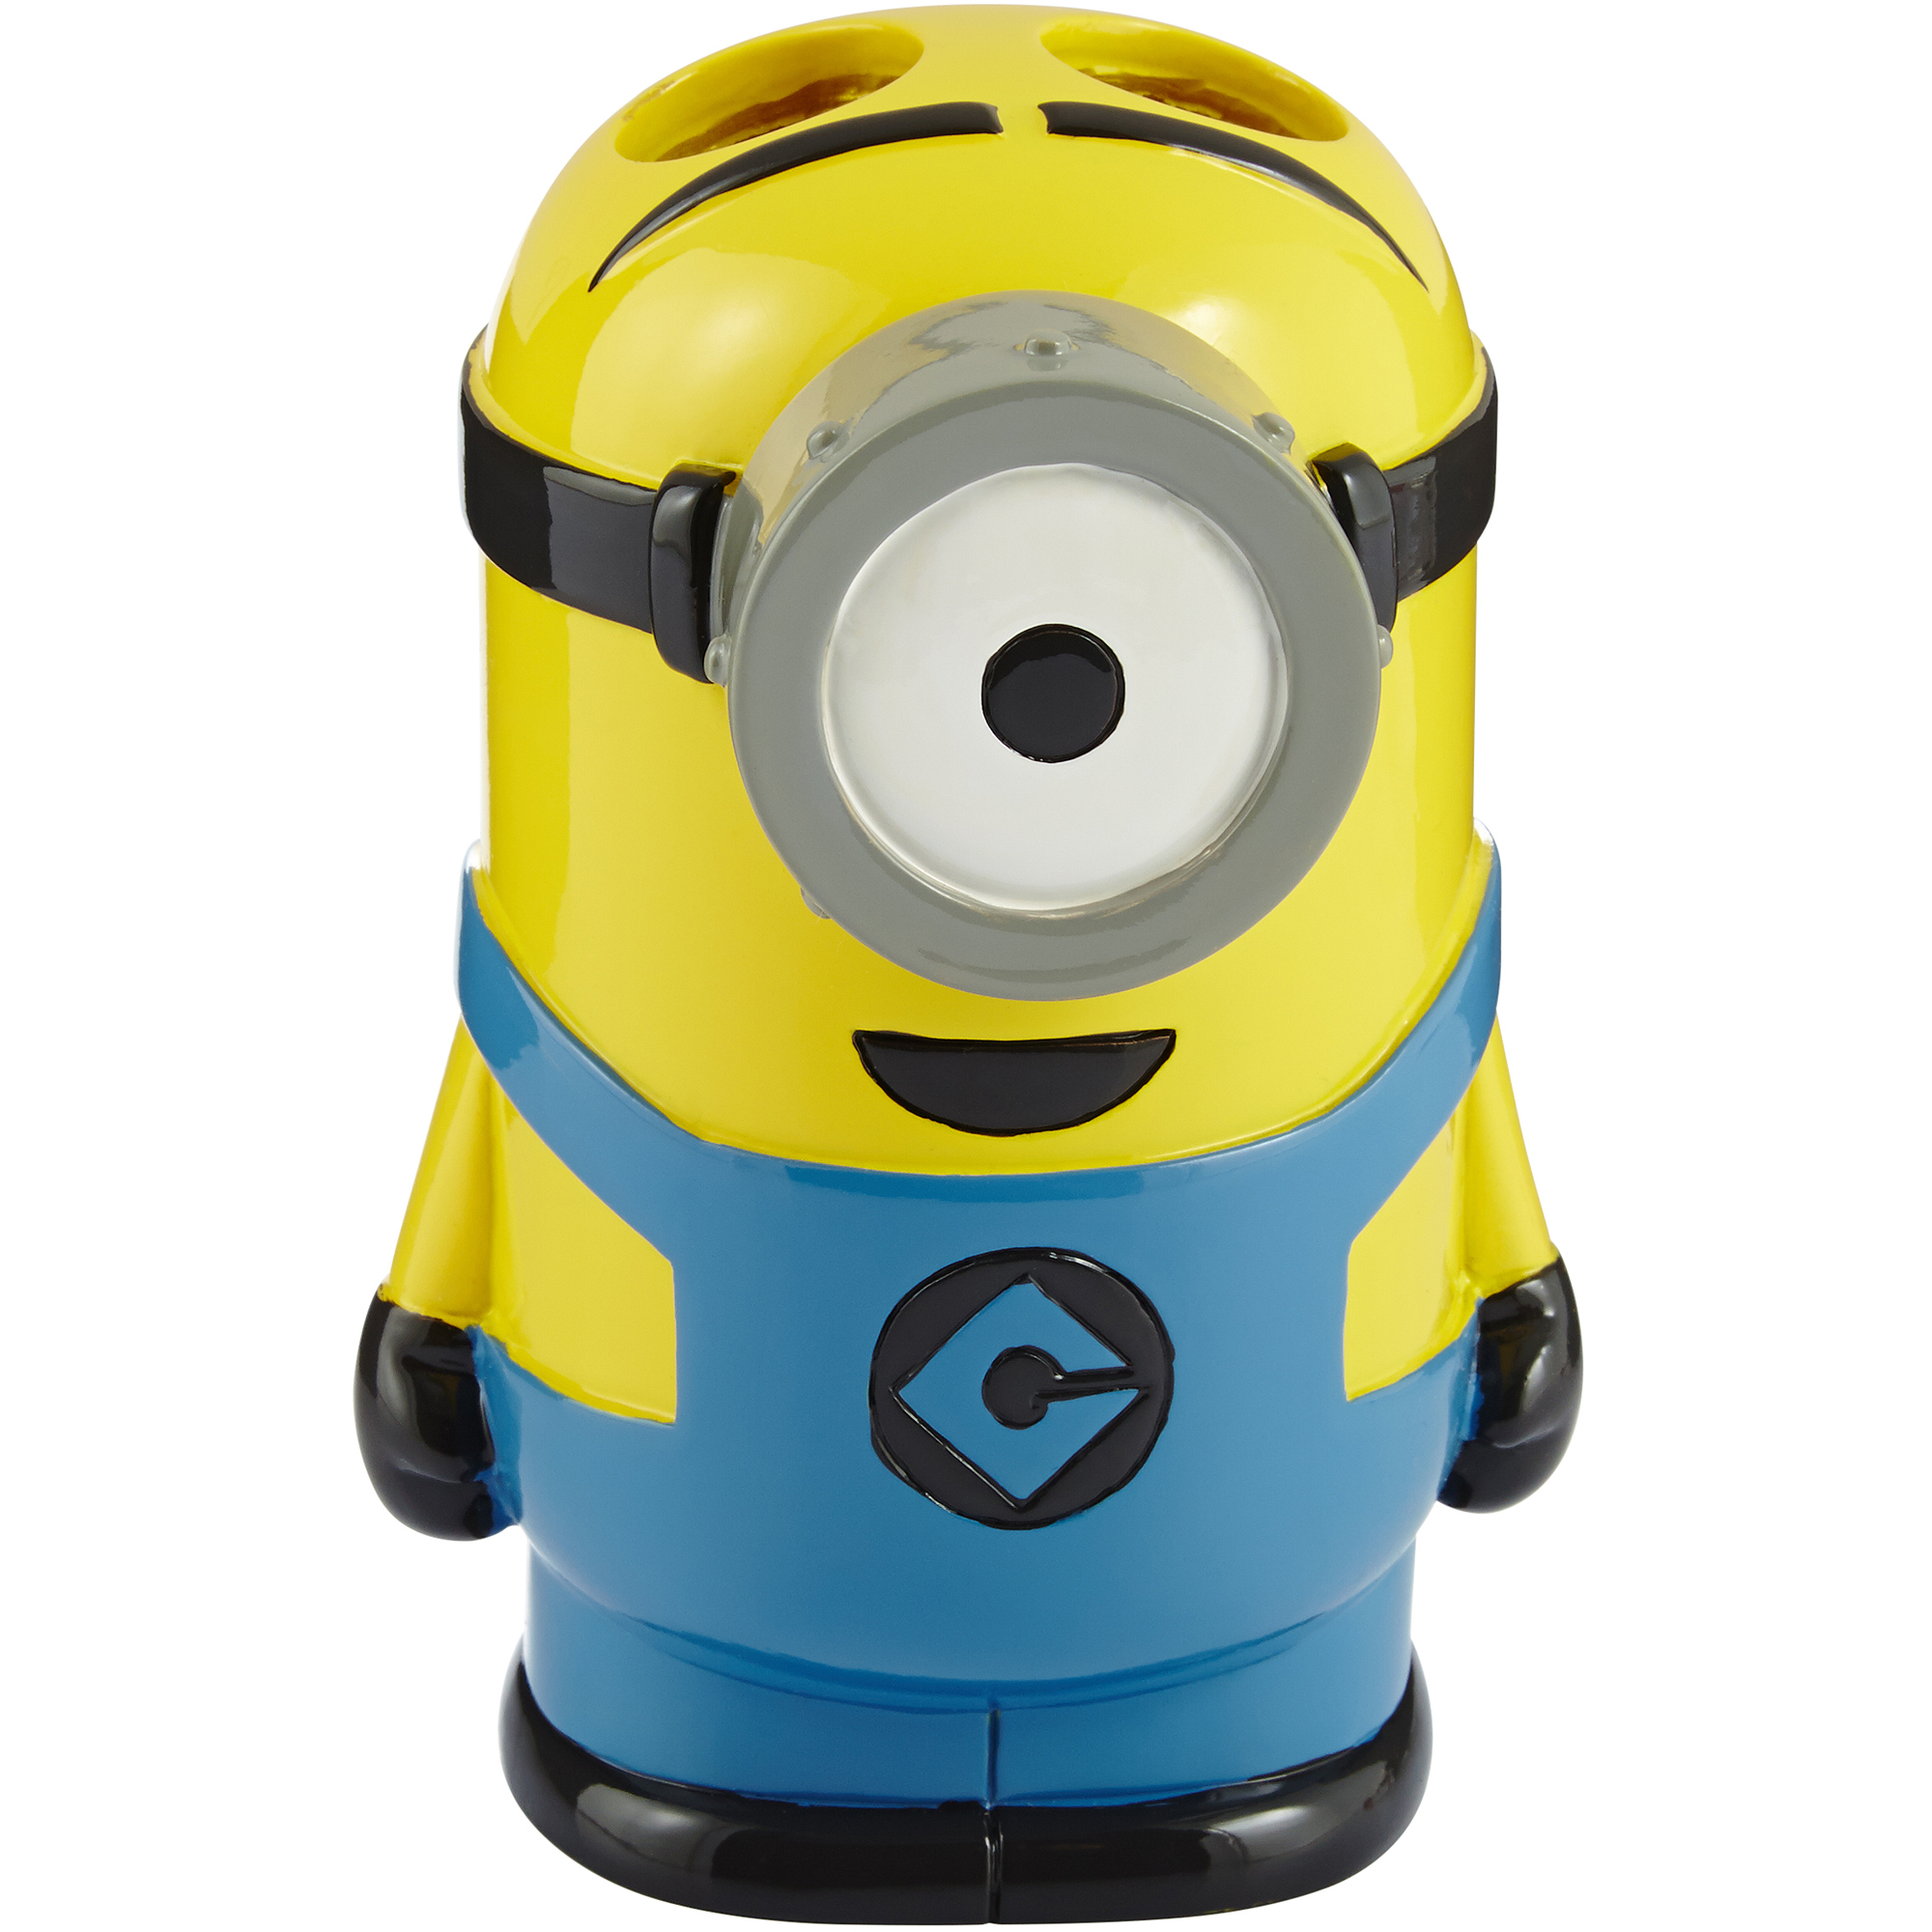 Universal's Minions Toothbrush Holder